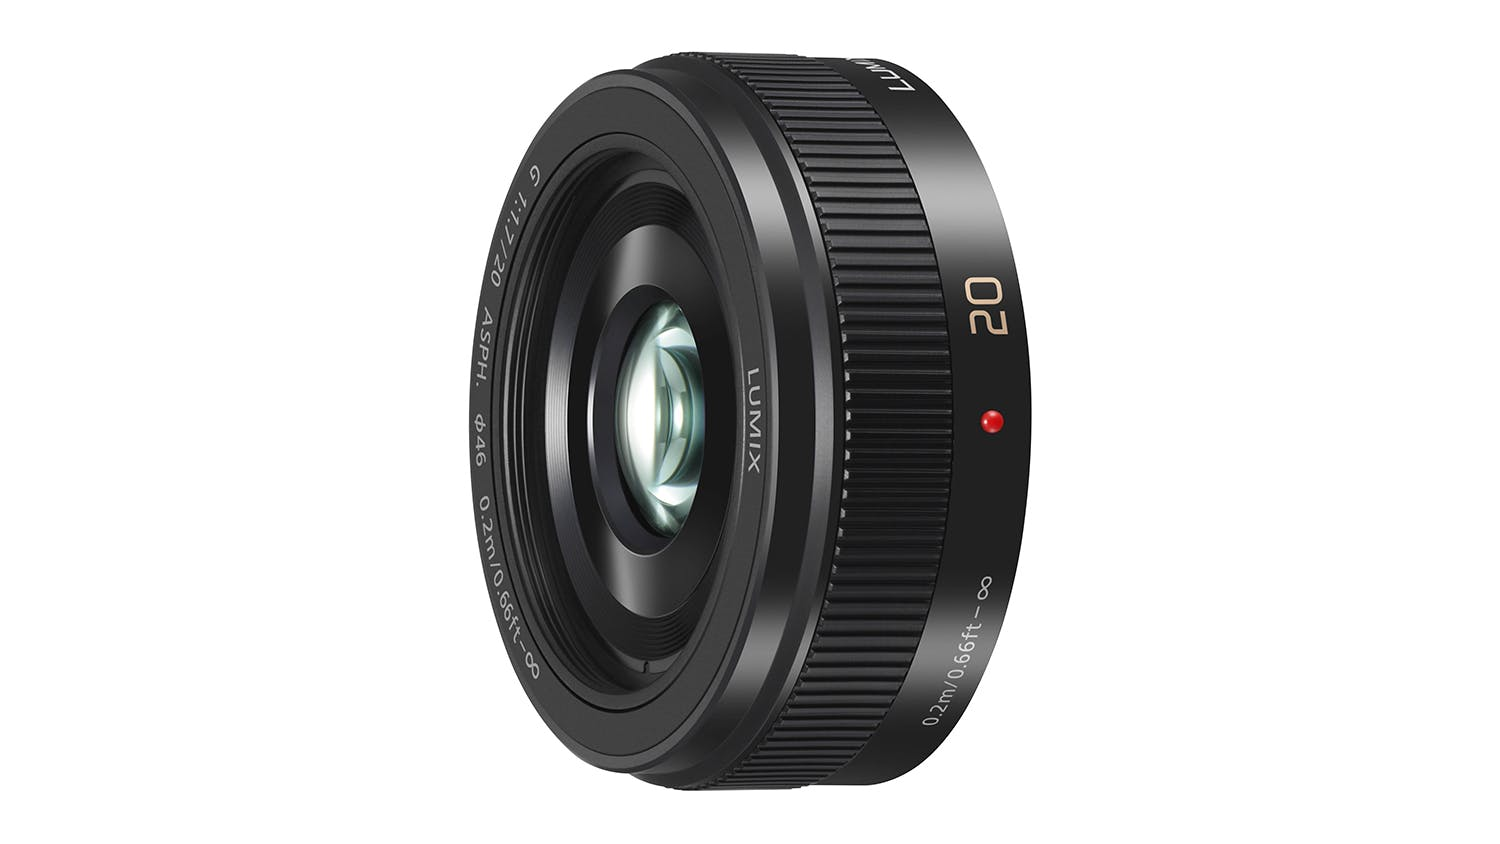 Panasonic Lumix G 20mm f/1.7 Lens